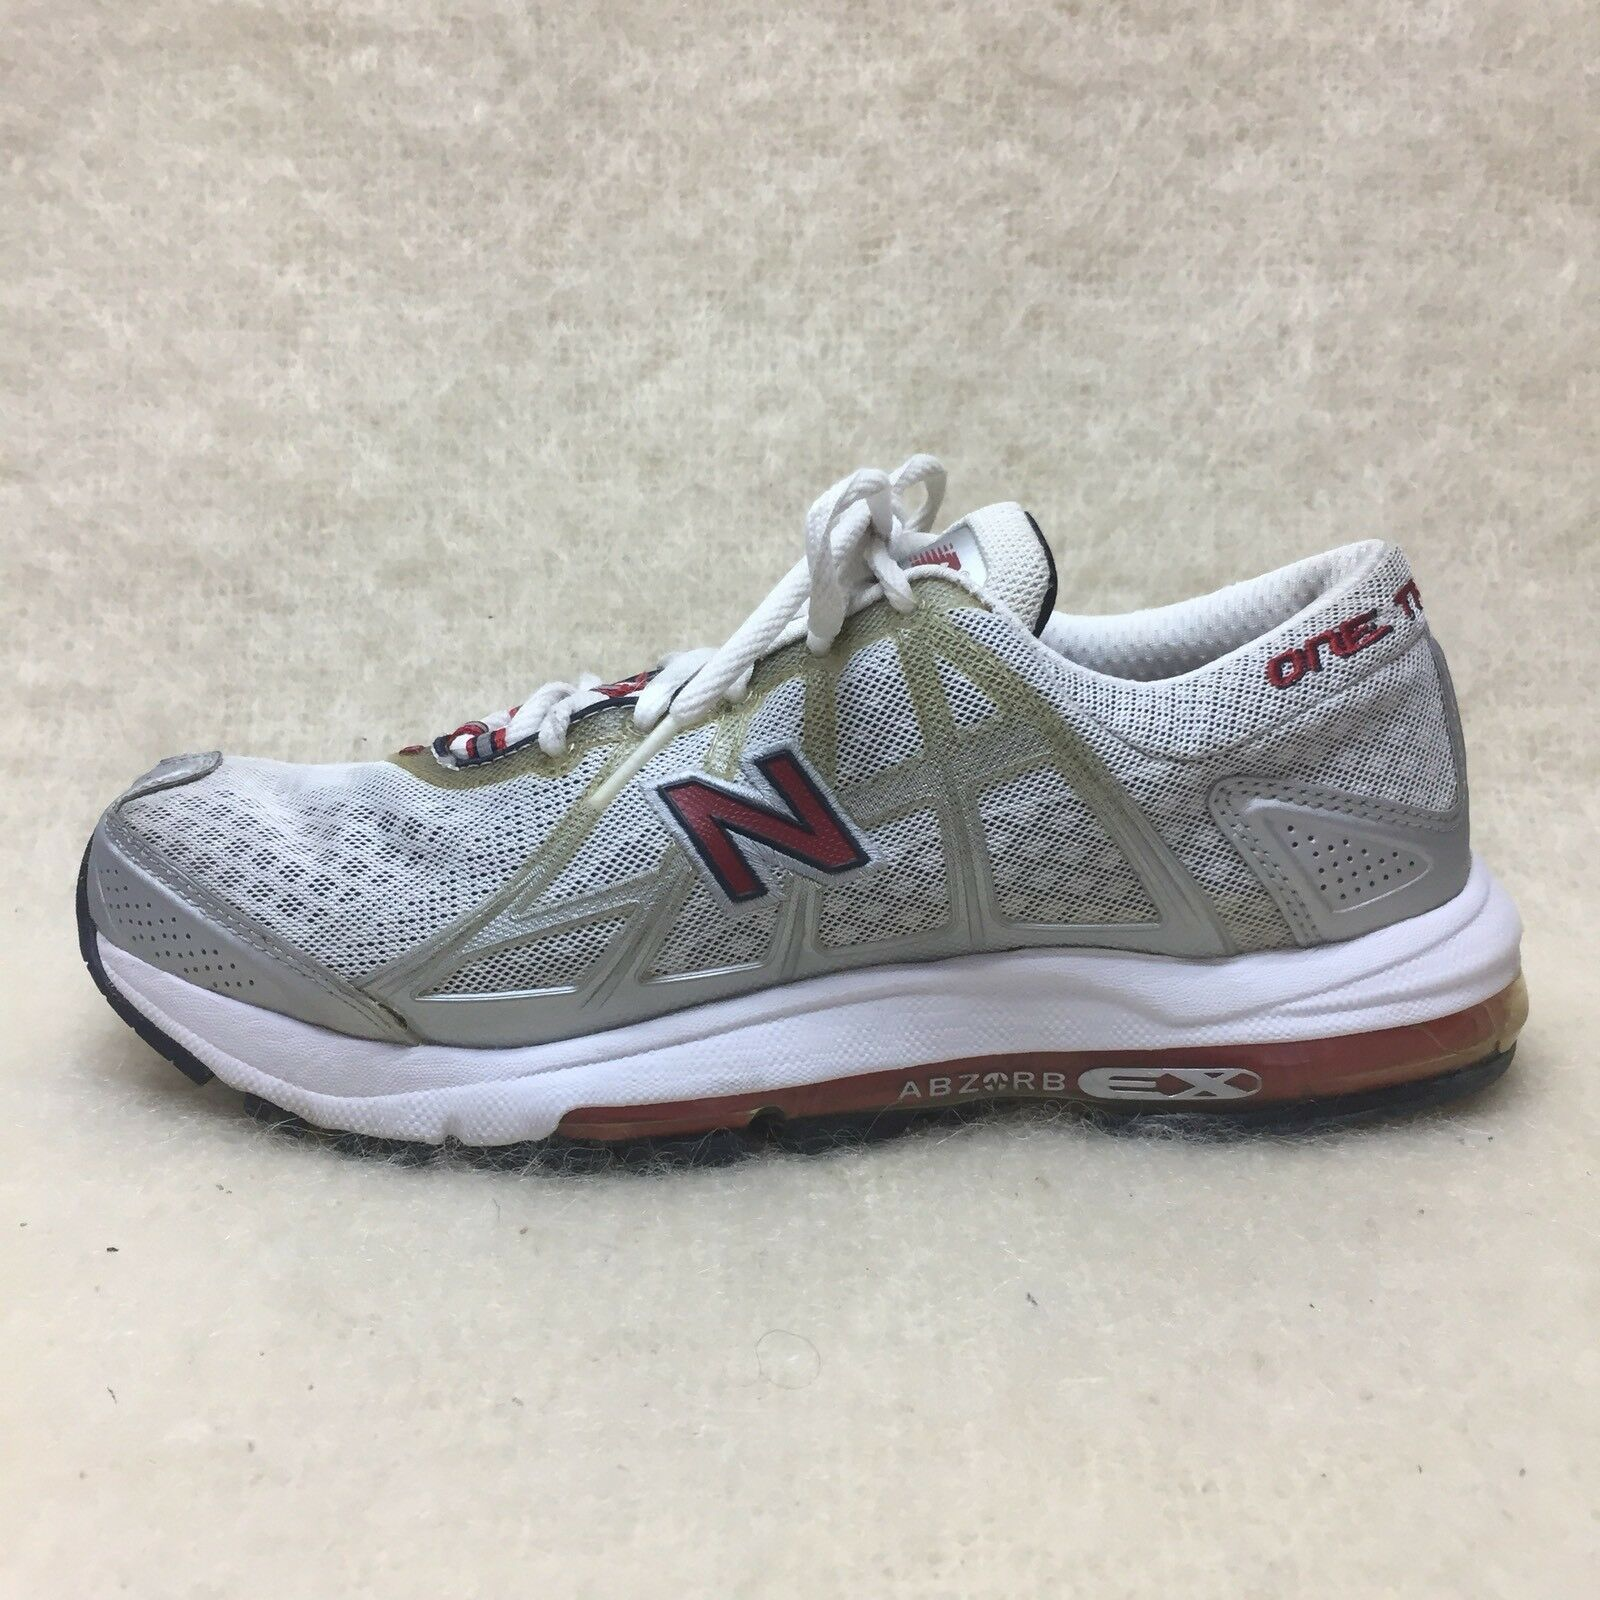 New New New Balance One Thousand M1000SR  8   Uomo EUR 41.5 5d9685